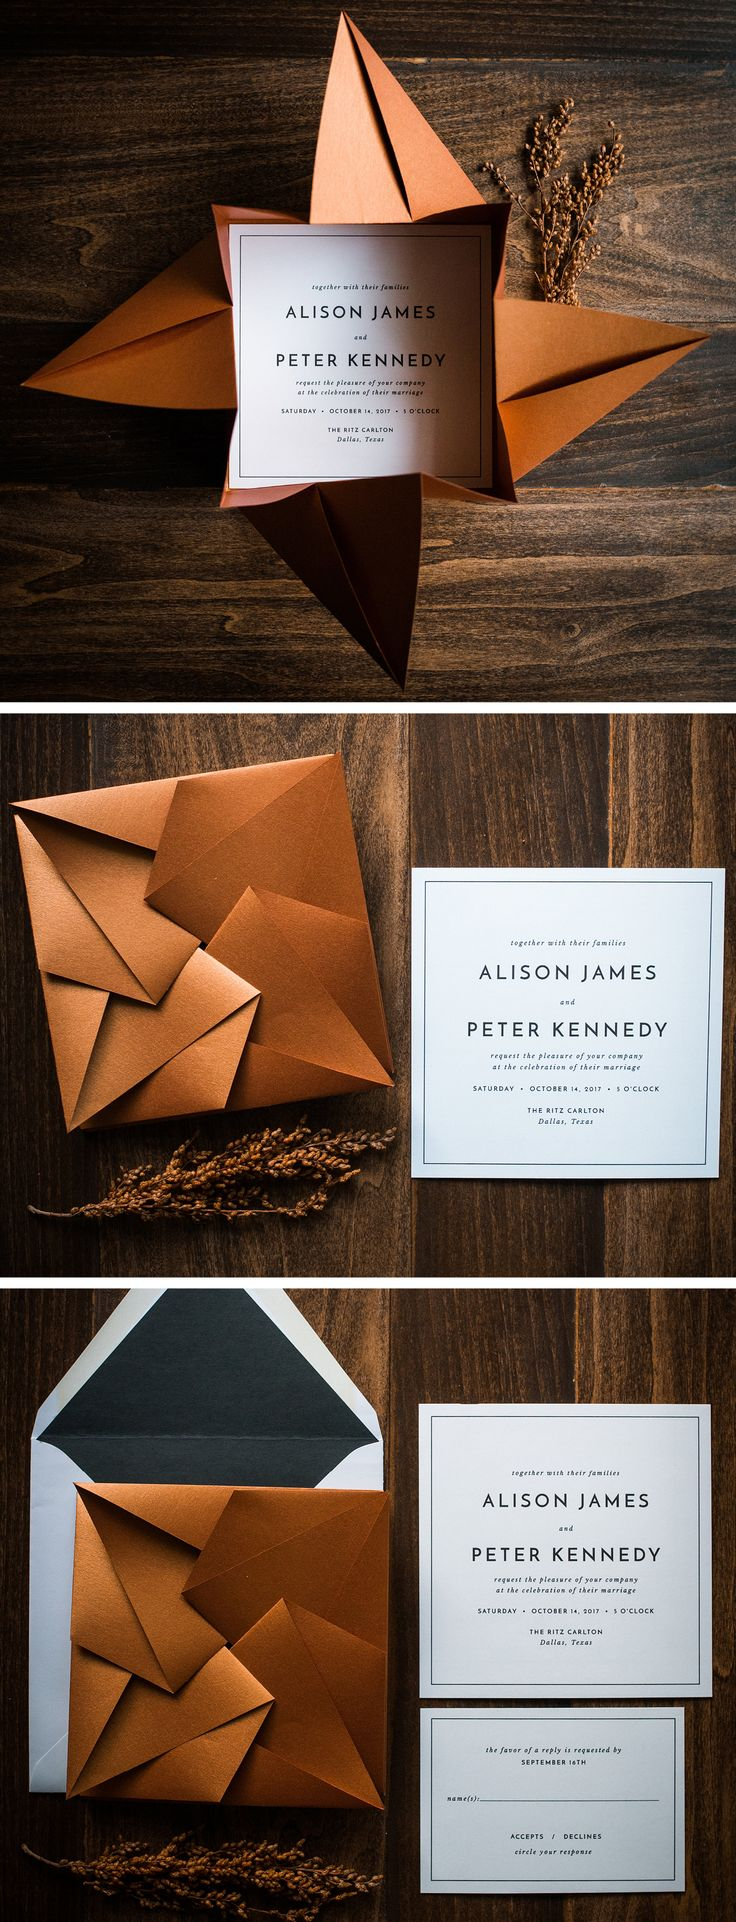 Origami bamboo letterfold folding instructions - Unique Origami Wedding Invitation By Penn Paperie Shown In Shimmer Copper And Black Color